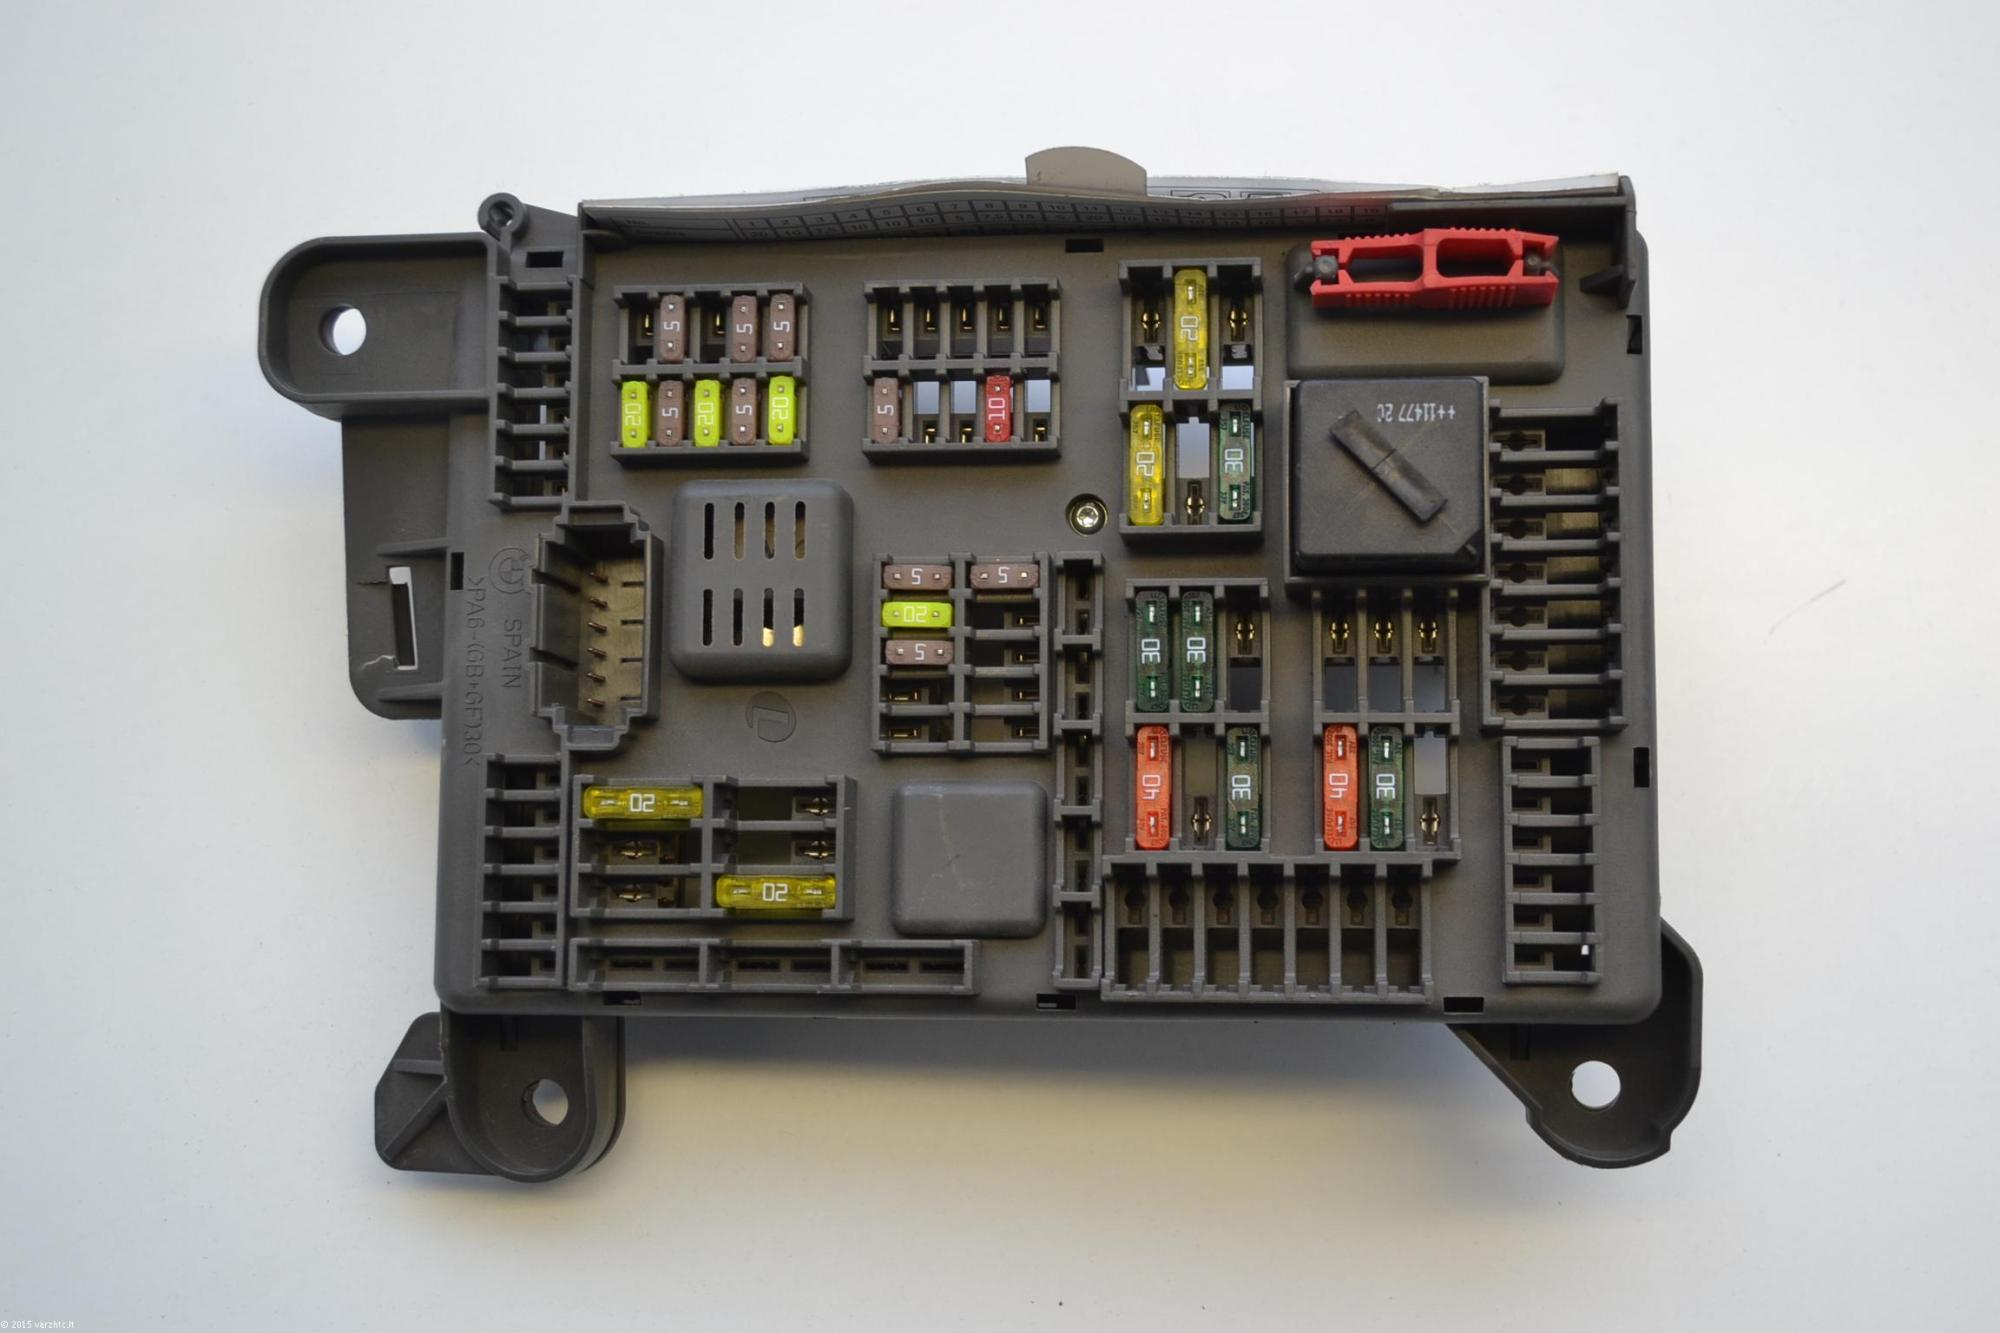 hight resolution of bmw x5 e70 2011 fuse box board module 518954021a 2011 bmw x5 fuse box location 2011 bmw x5 35d fuse box diagram